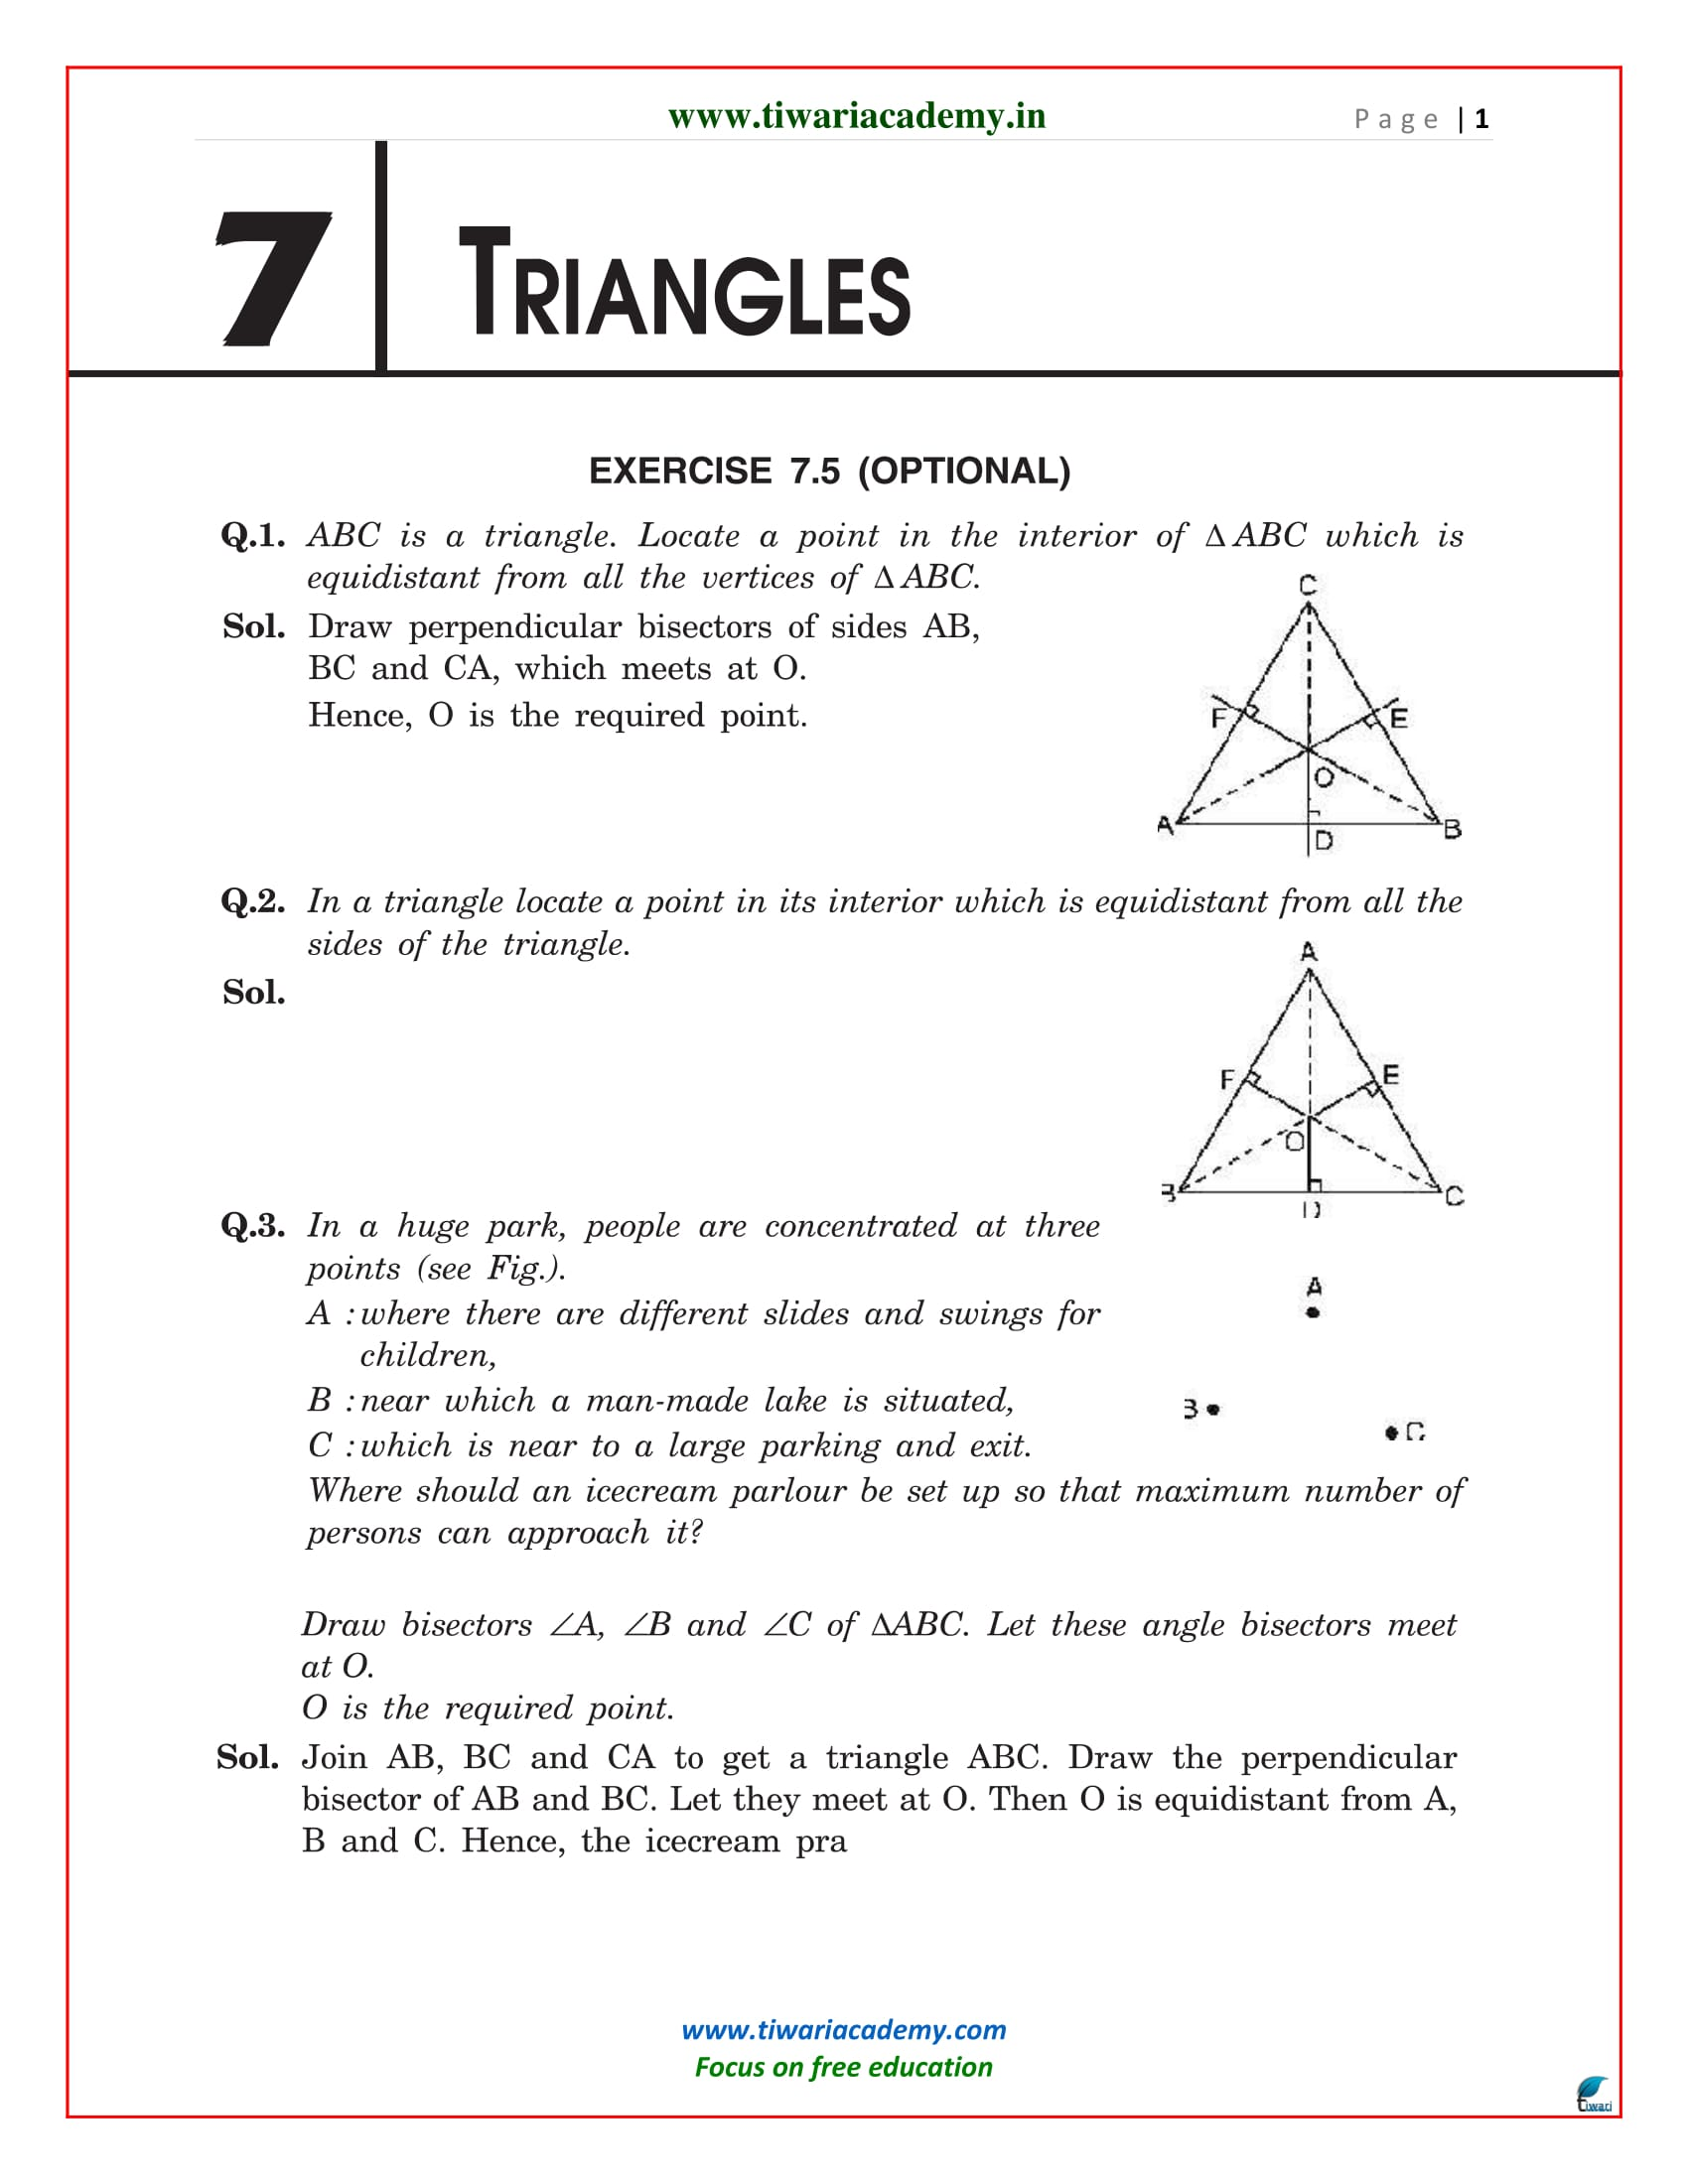 NCERT Solutions for Class 9 Maths Chapter 7 Exercise 7.5